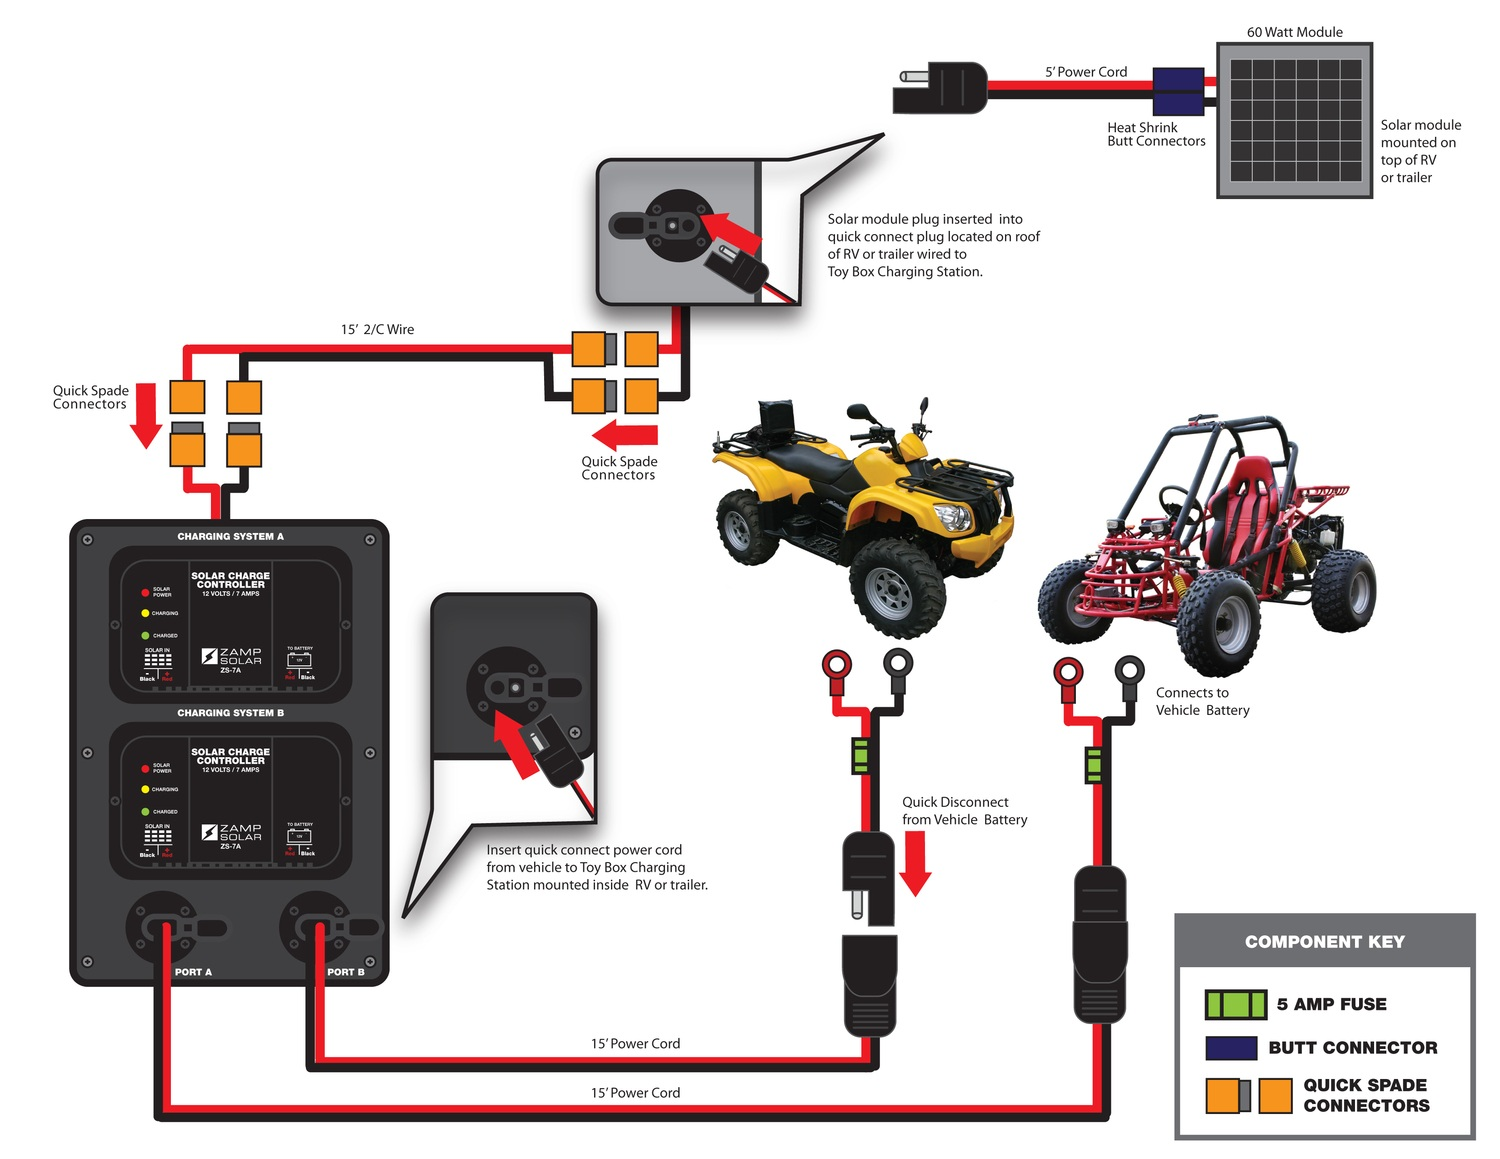 wrg 9303 wiring diagram for battery operated toys wiring diagram for battery operated toys [ 1500 x 1159 Pixel ]